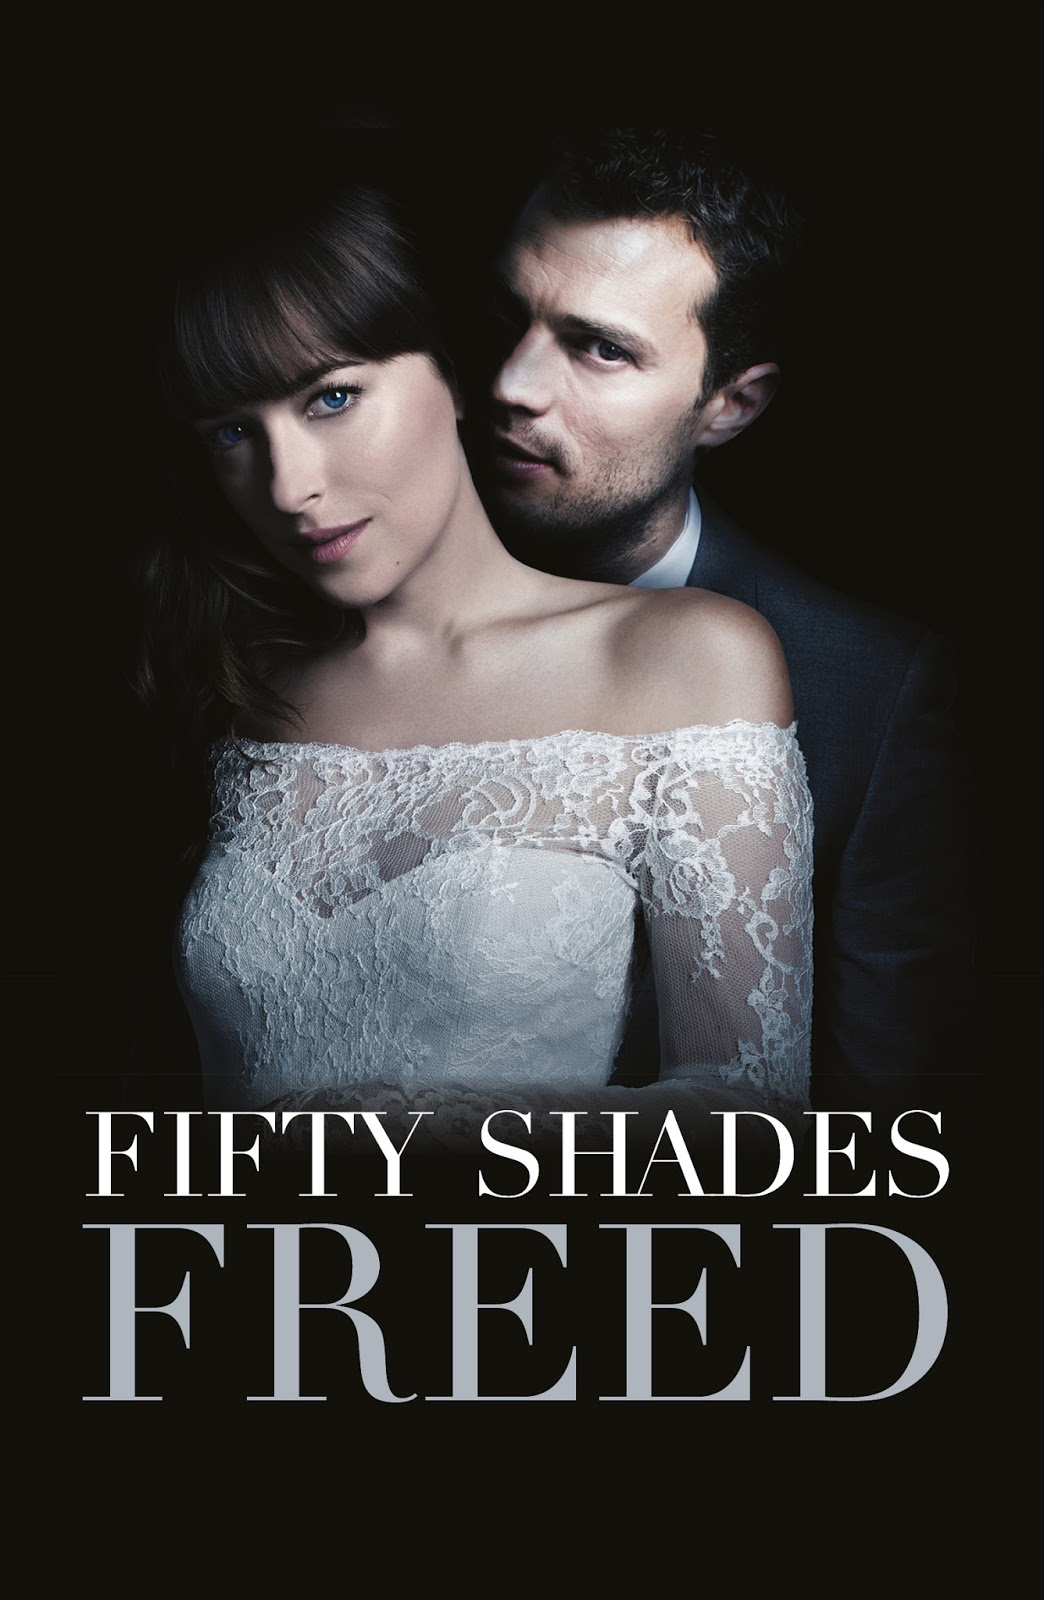 Fifty Shades Freed [2018] [DVDR] [NTSC] [CUSTOM HD] [Subtitulado] [Unrated]